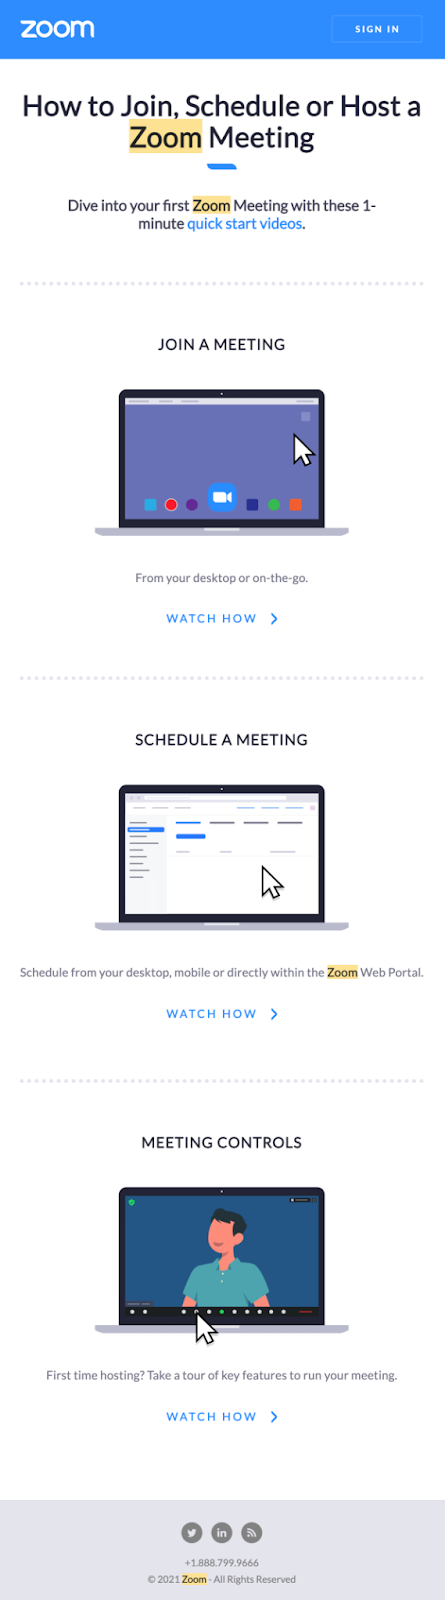 Zoom personalized email content